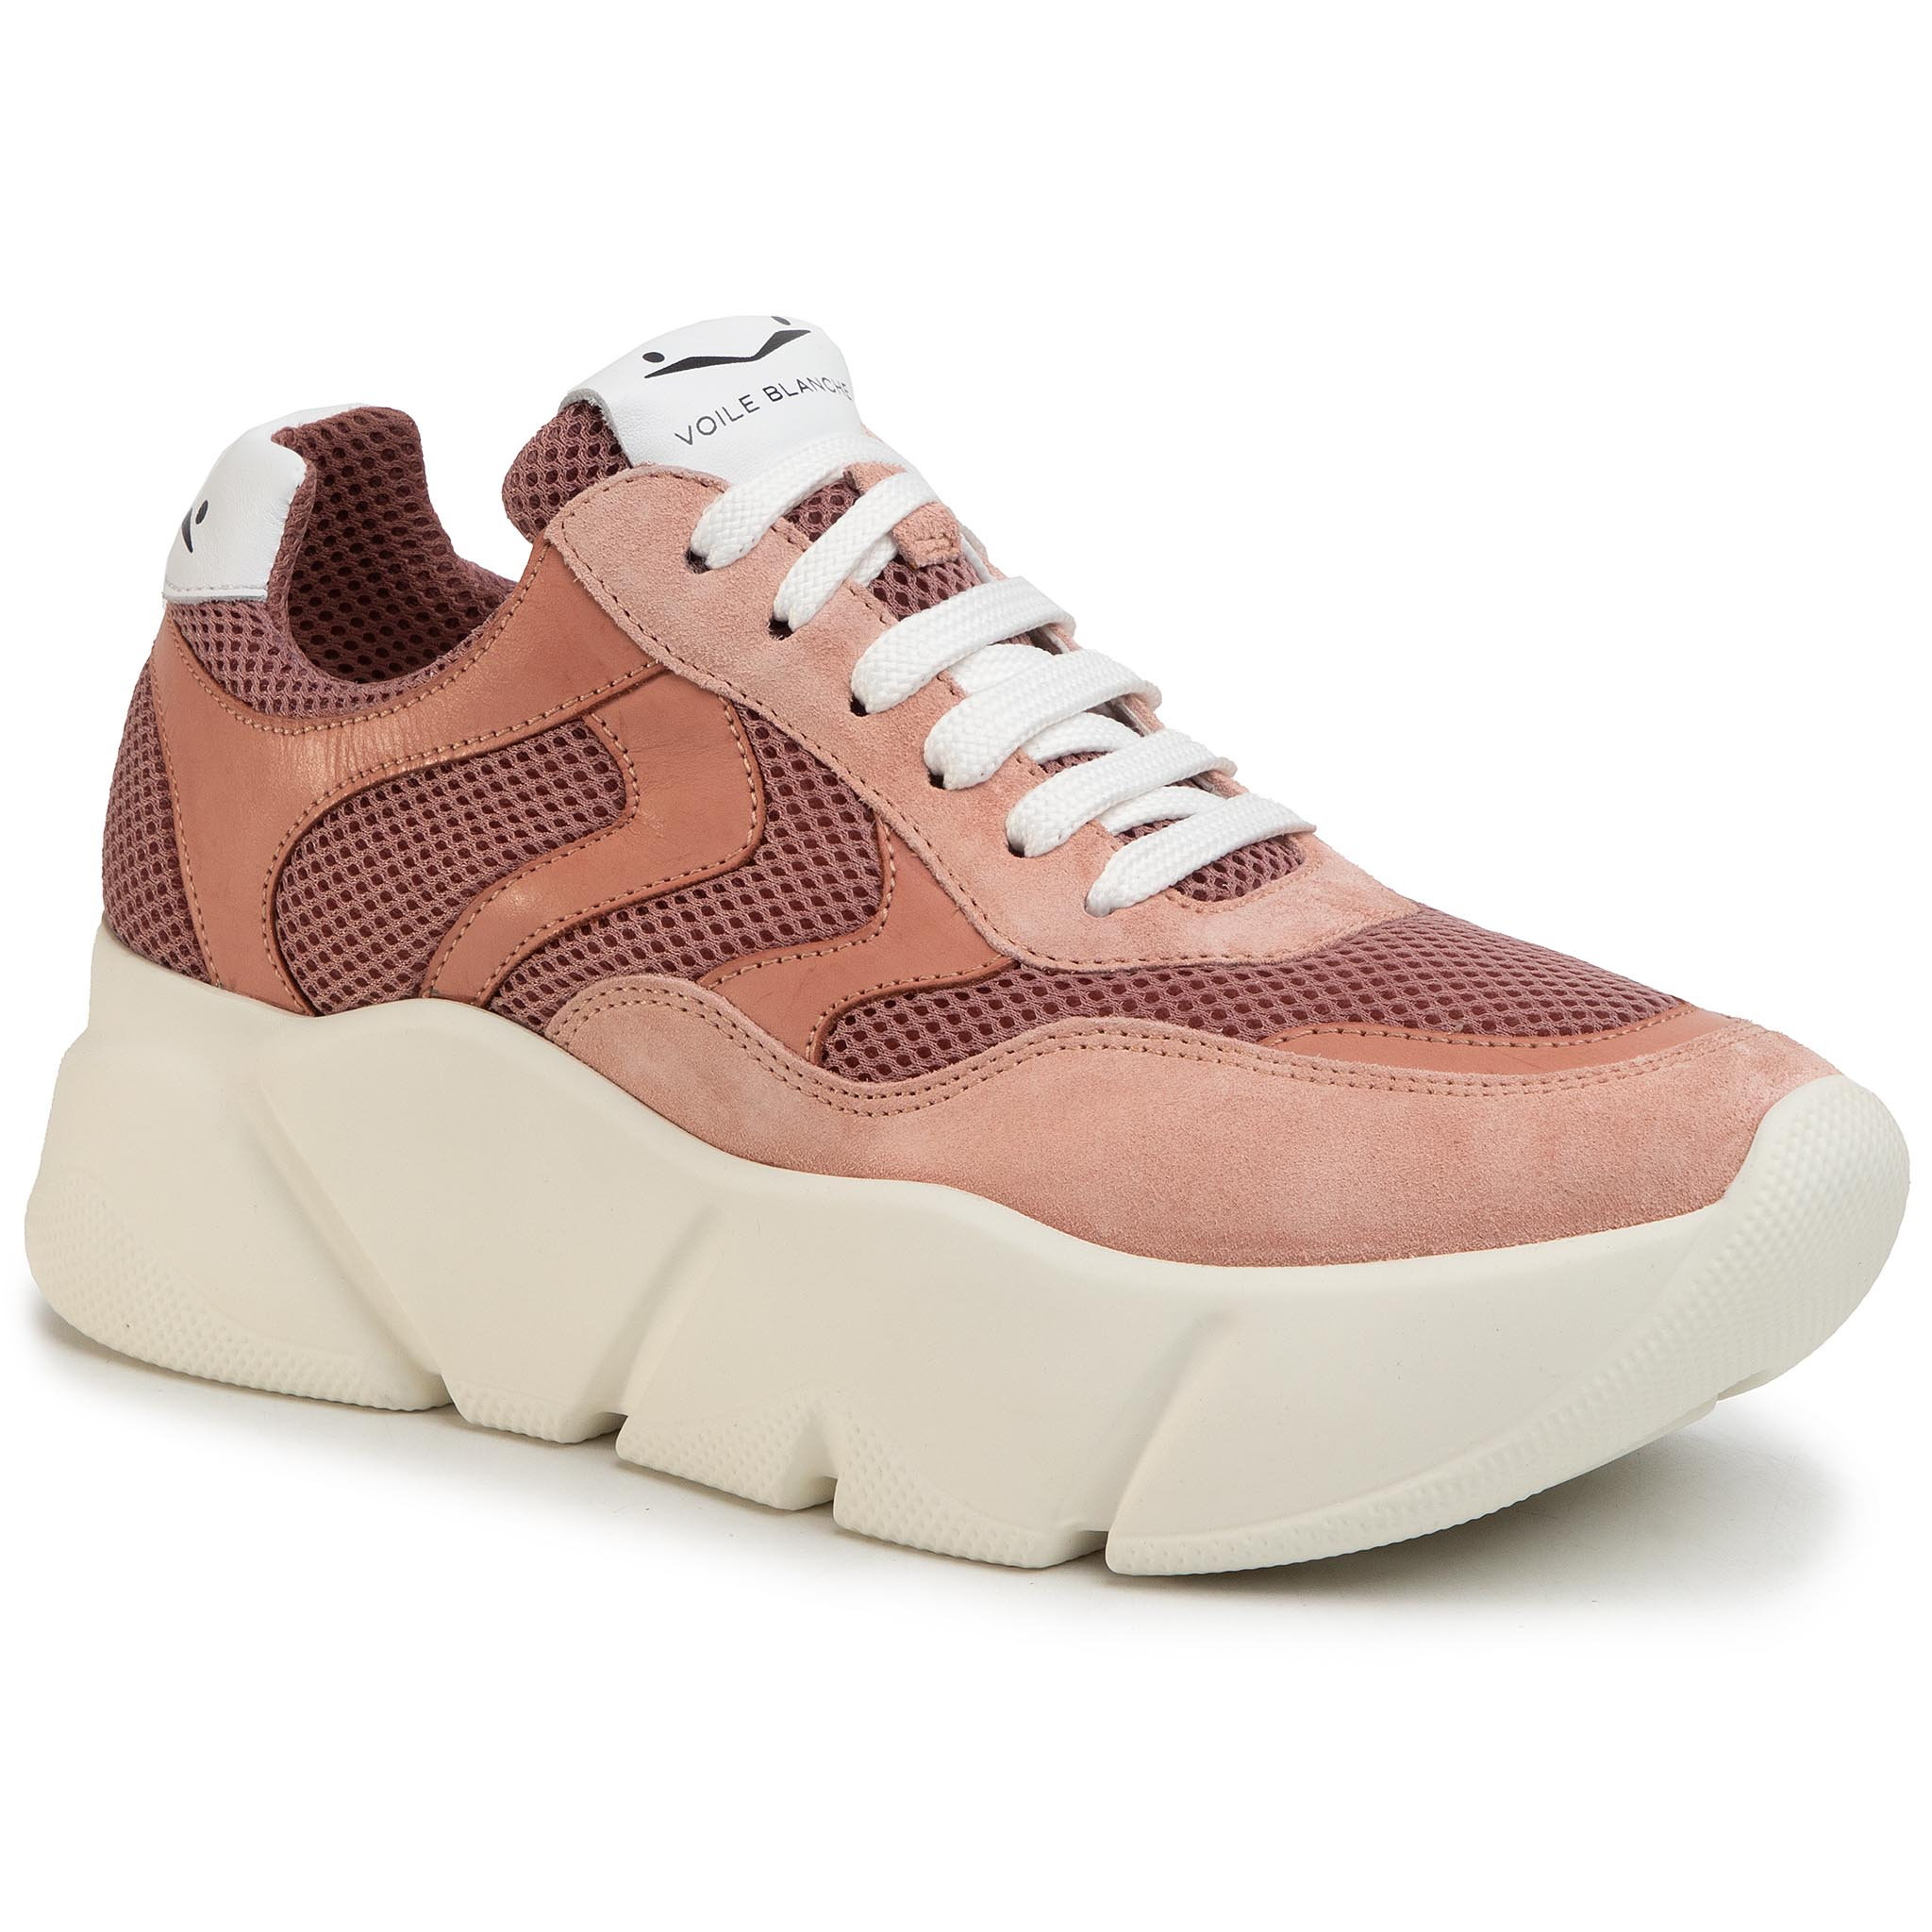 Sneakers VOILE BLANCHE - Monster 0012013532.06.0M02 Rosa